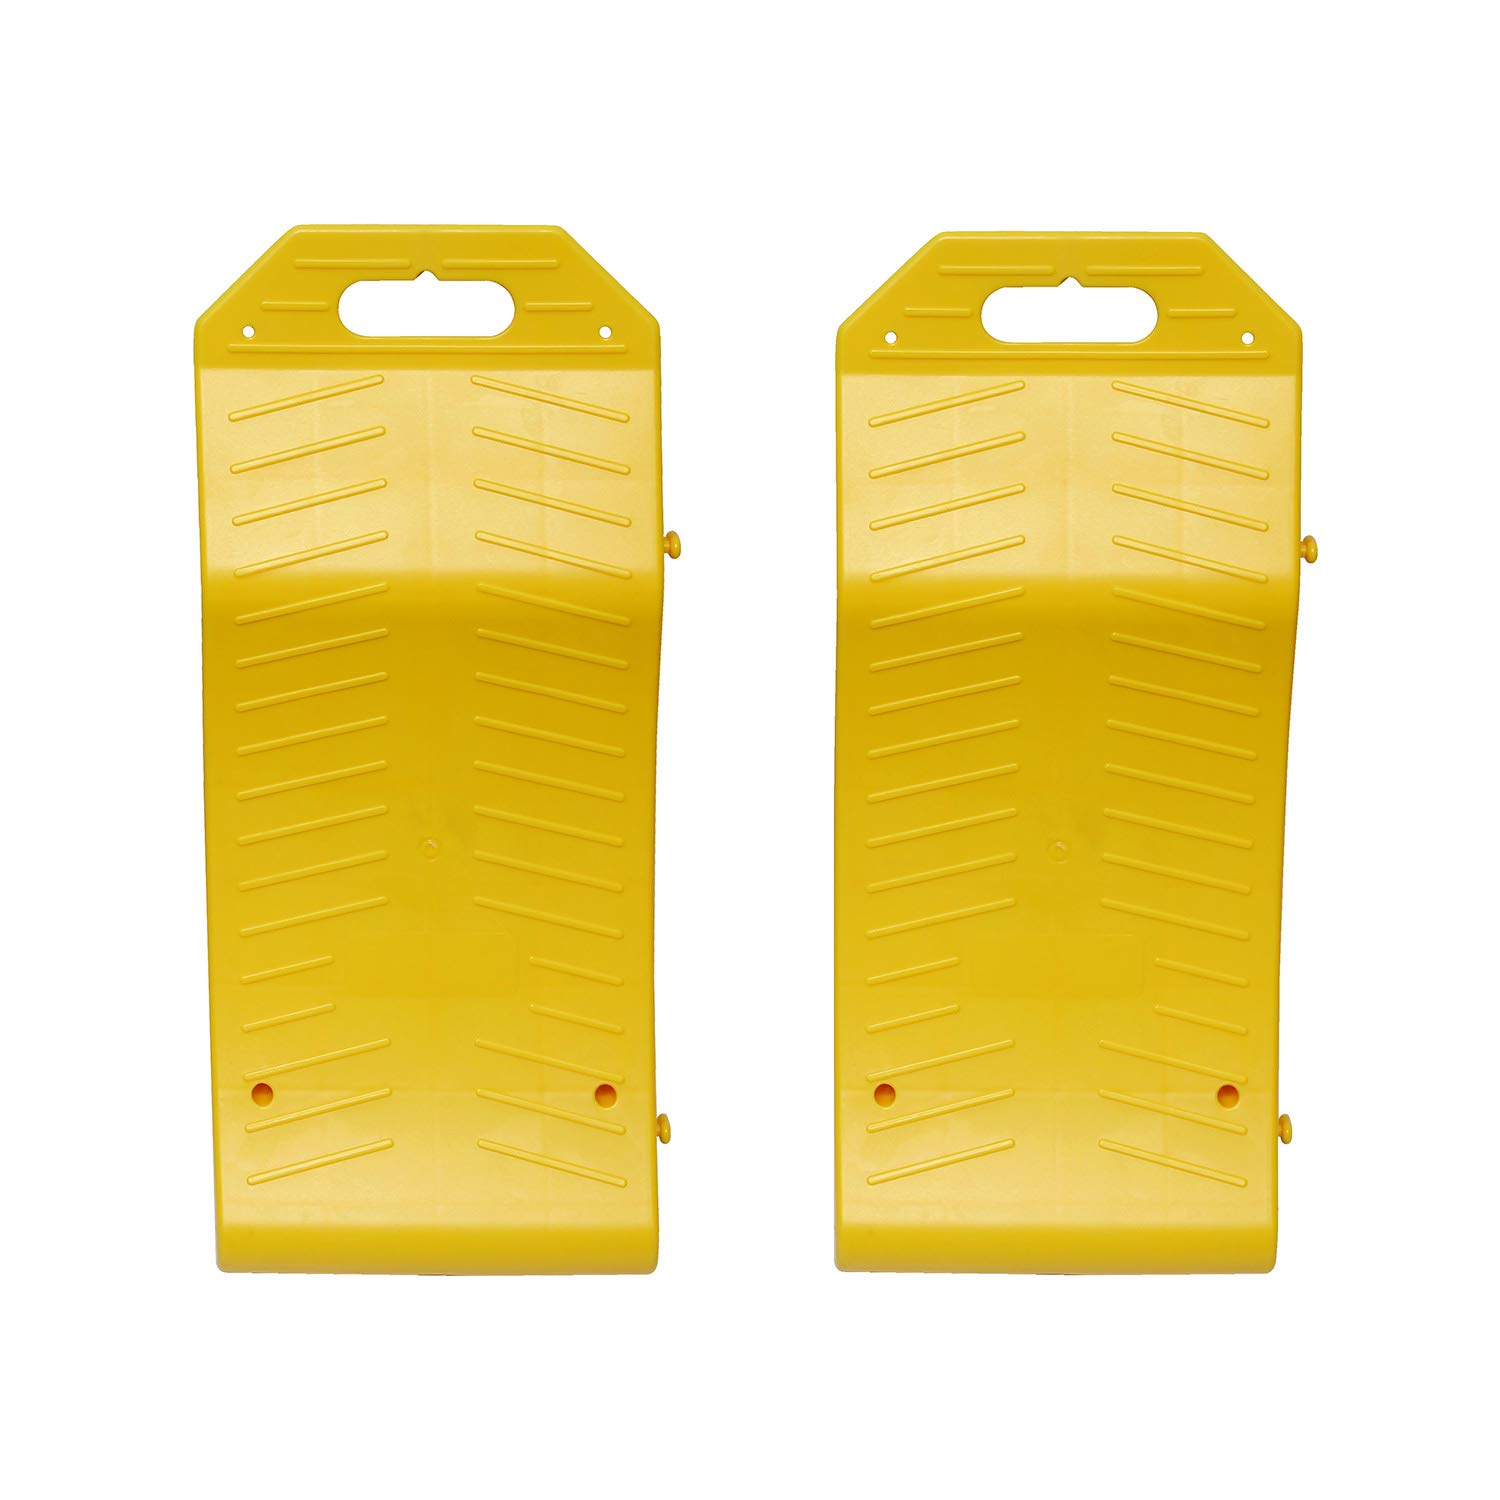 BISupply Tire Saver Ramps - Vehicle Storage Ramp Set Curved Low Profile Ramps Portable Plastic Car Ramps, 2 Pk